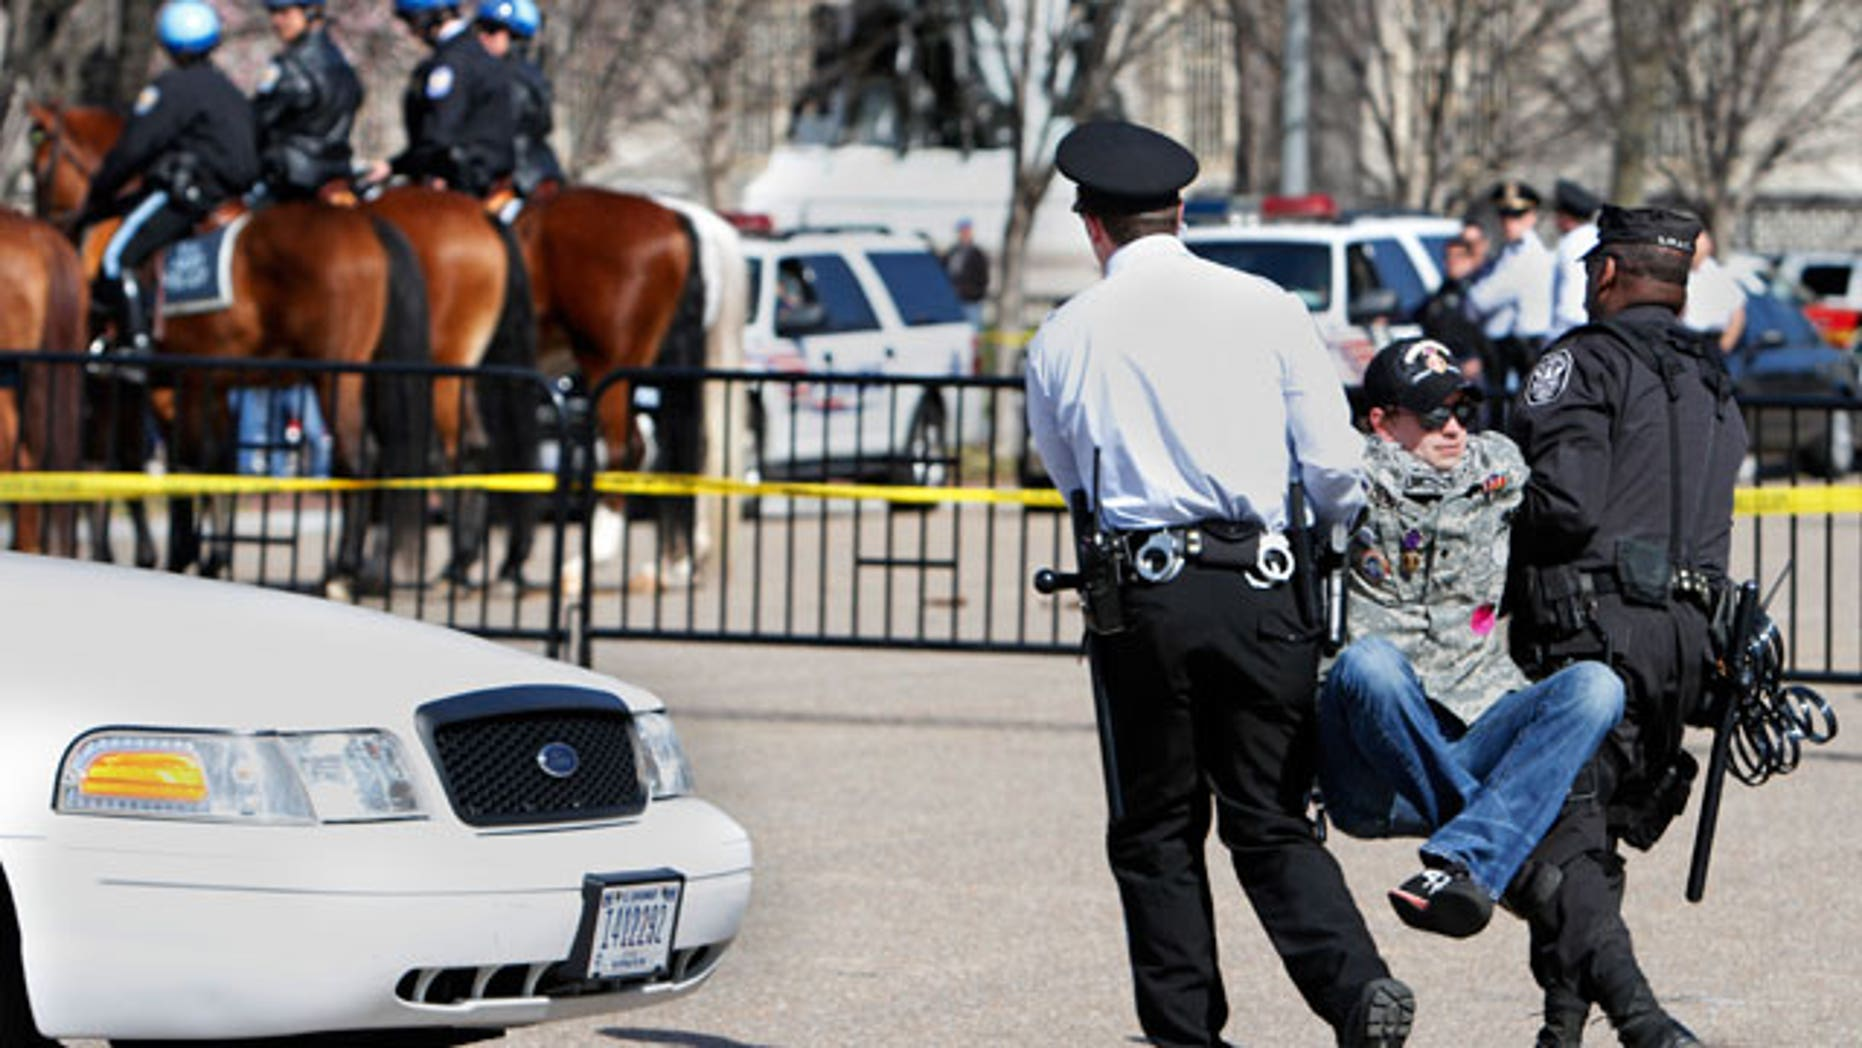 A unidentified protester lifts his legs as he is arrested by U.S. Park Police near the White House while protesting against war on the 8th anniversary of the Iraq invasion in Washington, on Saturday, March 19, 2011. (AP)